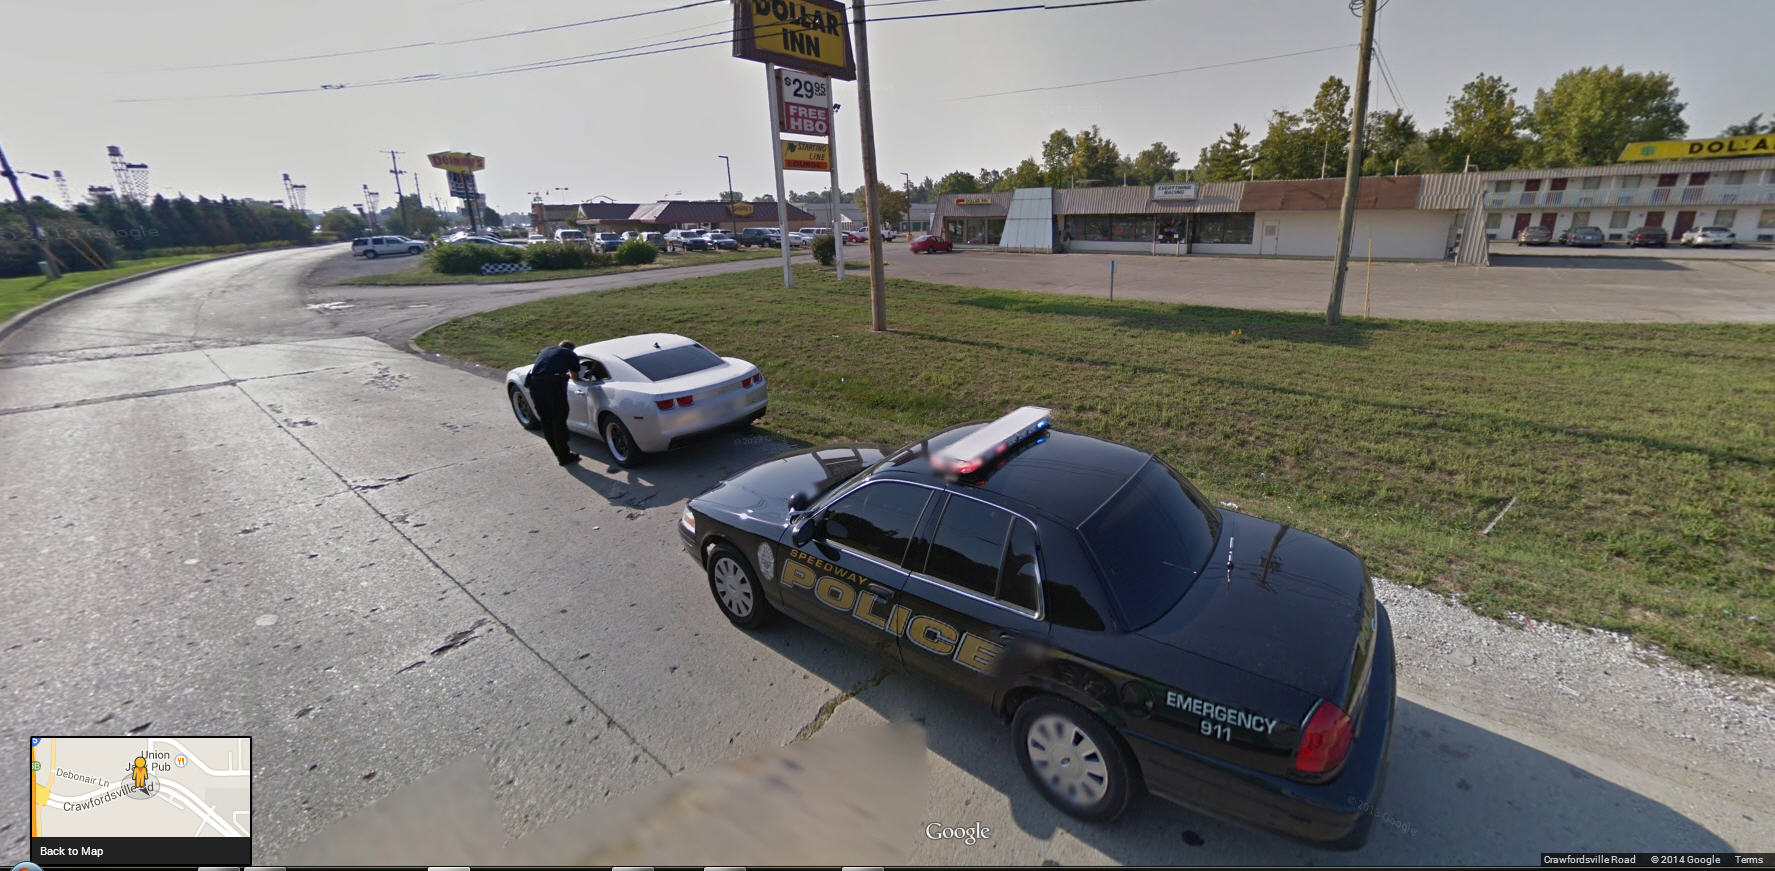 Priceless – Getting a Speeding Ticket from the Speedway Police in Indianapolis